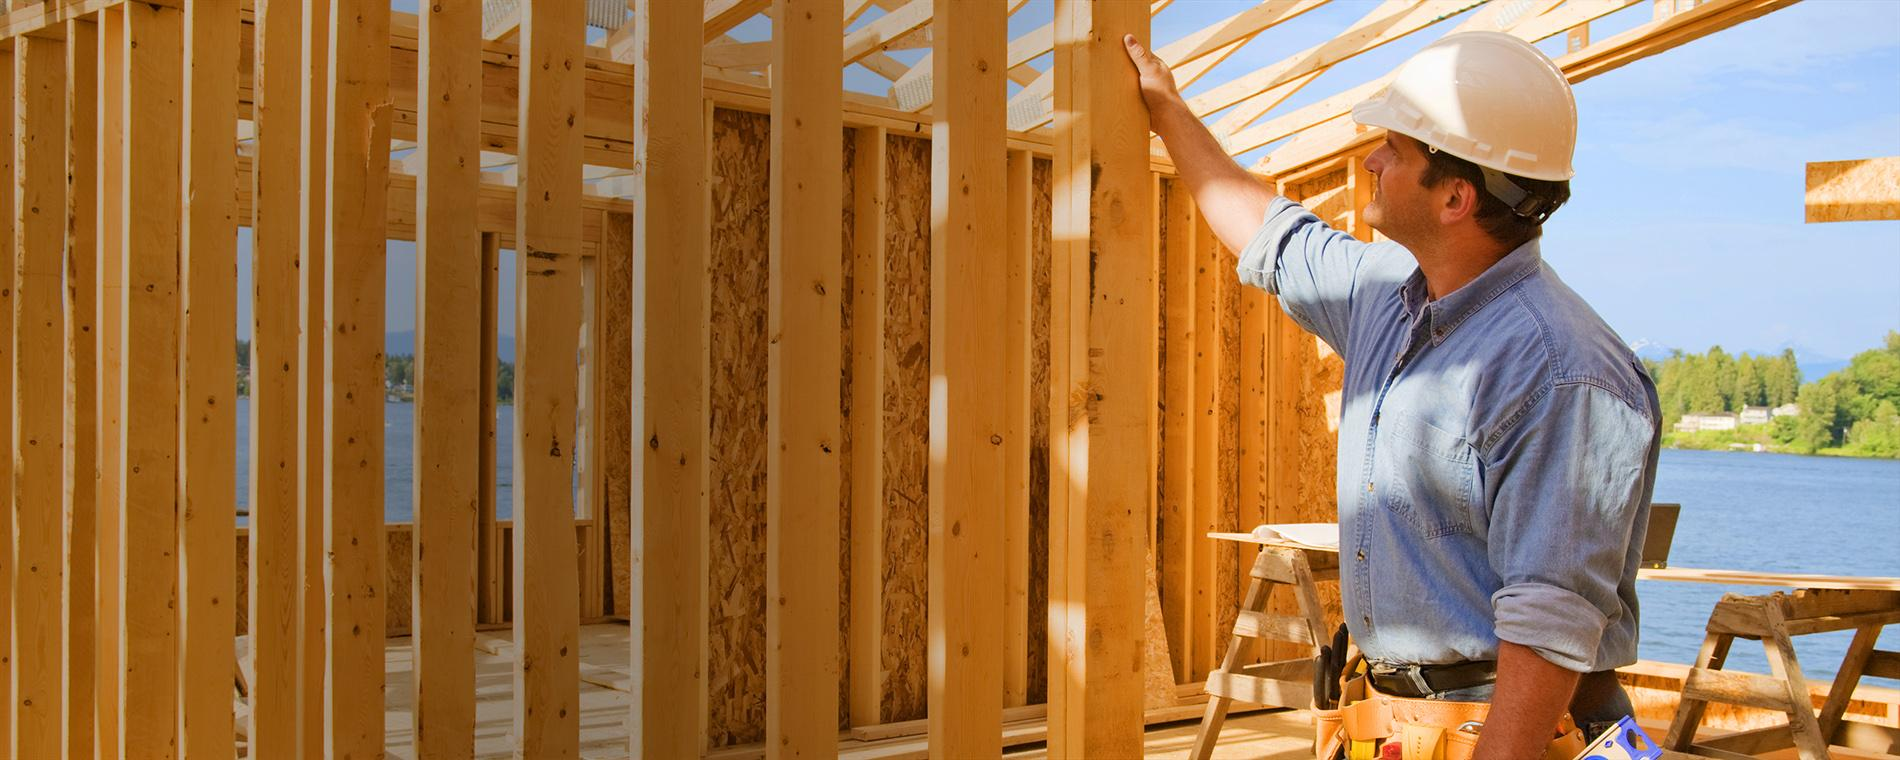 Finding a good contractor can be easy if you know how